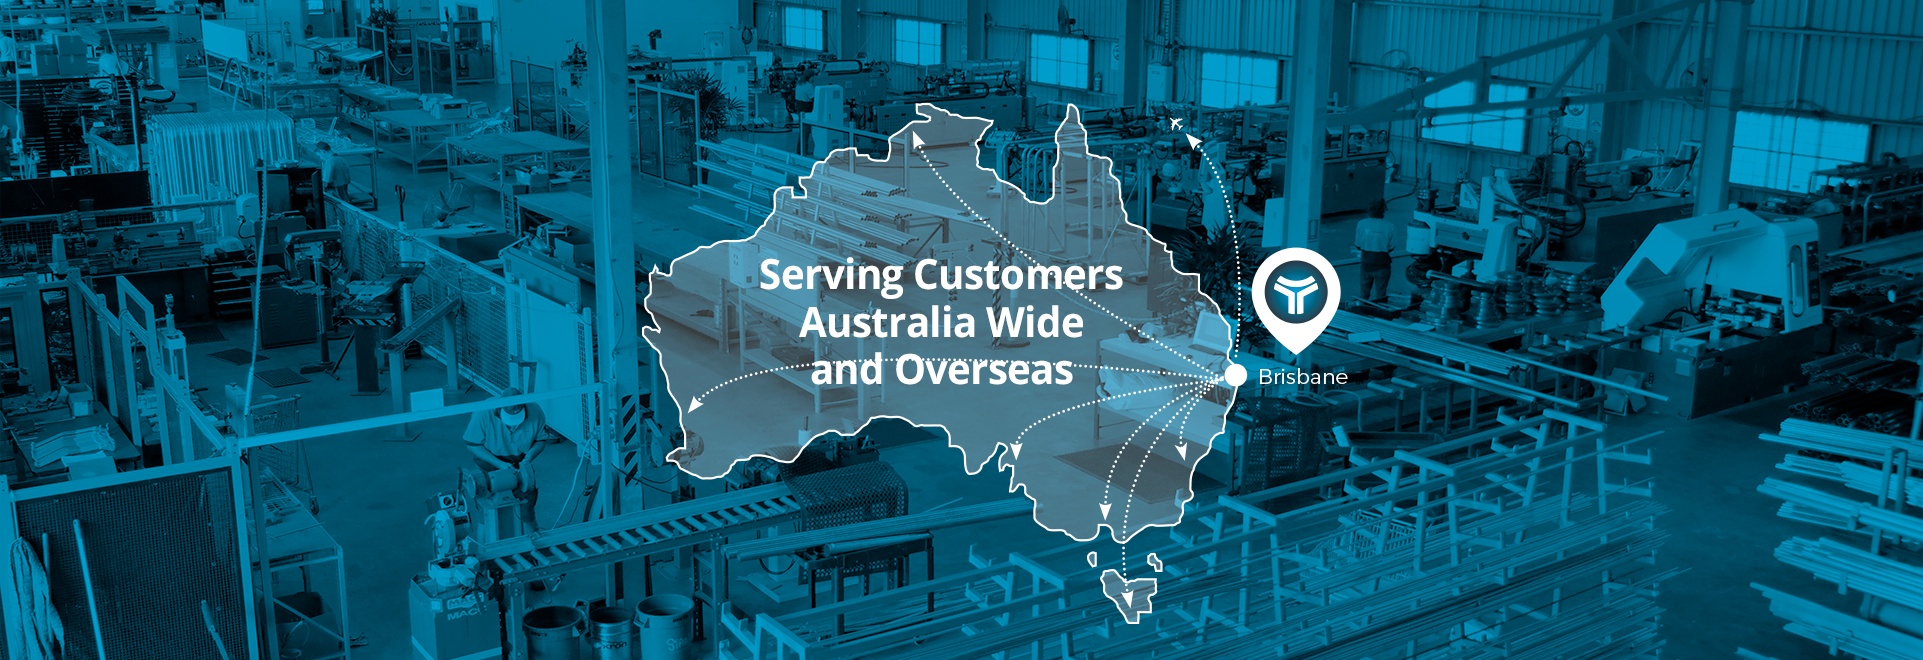 servicing-customers-australia-wide2019